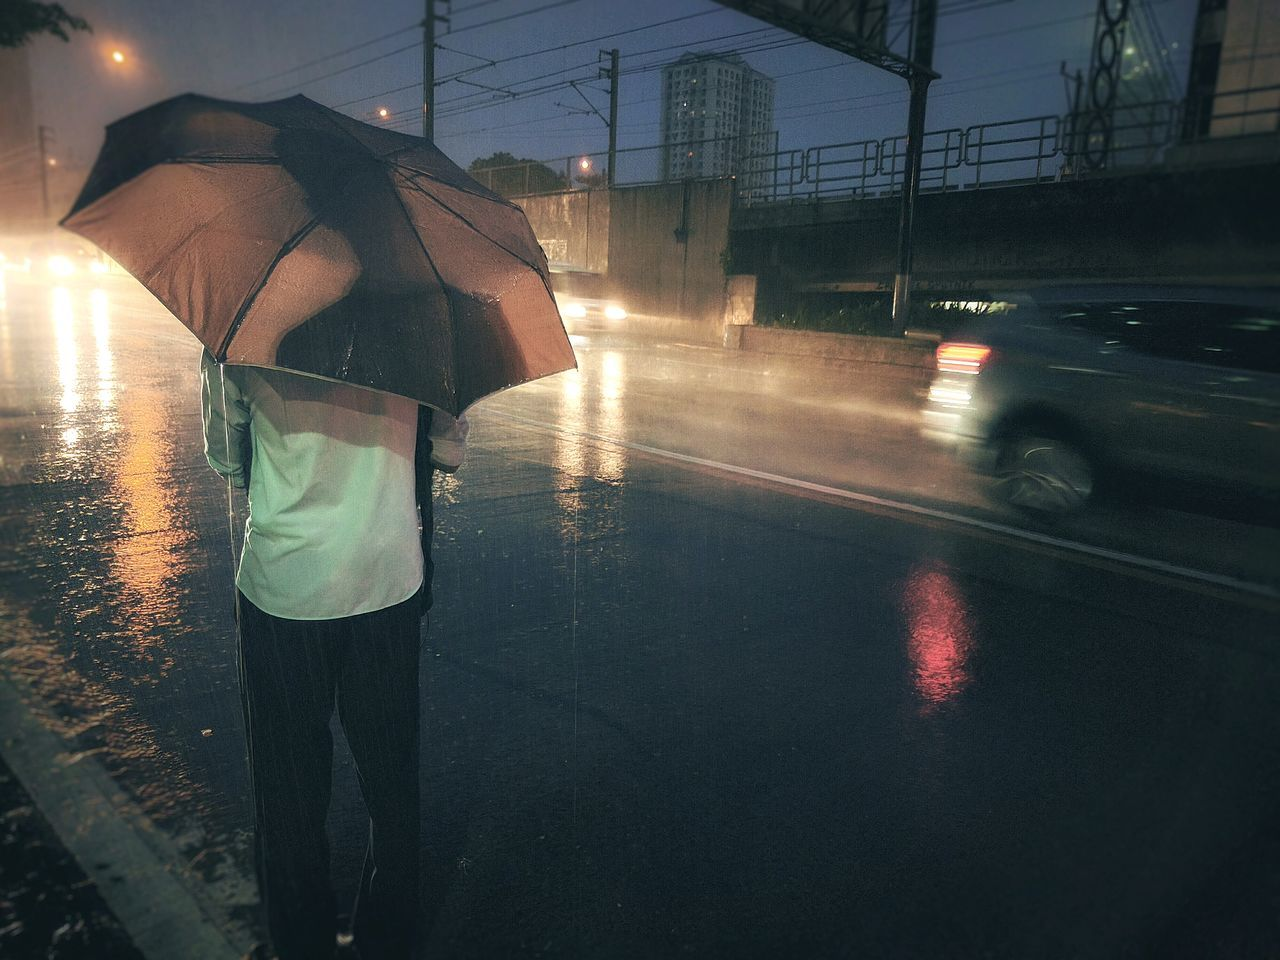 Raining Rainy Days☔ Rain Rainy Outdoor Photography Outdoor Pictures Waiting For The Bus Waiting Night Rain After Work Real People Umbrella☂☂ Umbrella Cold Days Cold Night Eyeem Philippines Rain Collection Weather Collection Quezon City Philippines